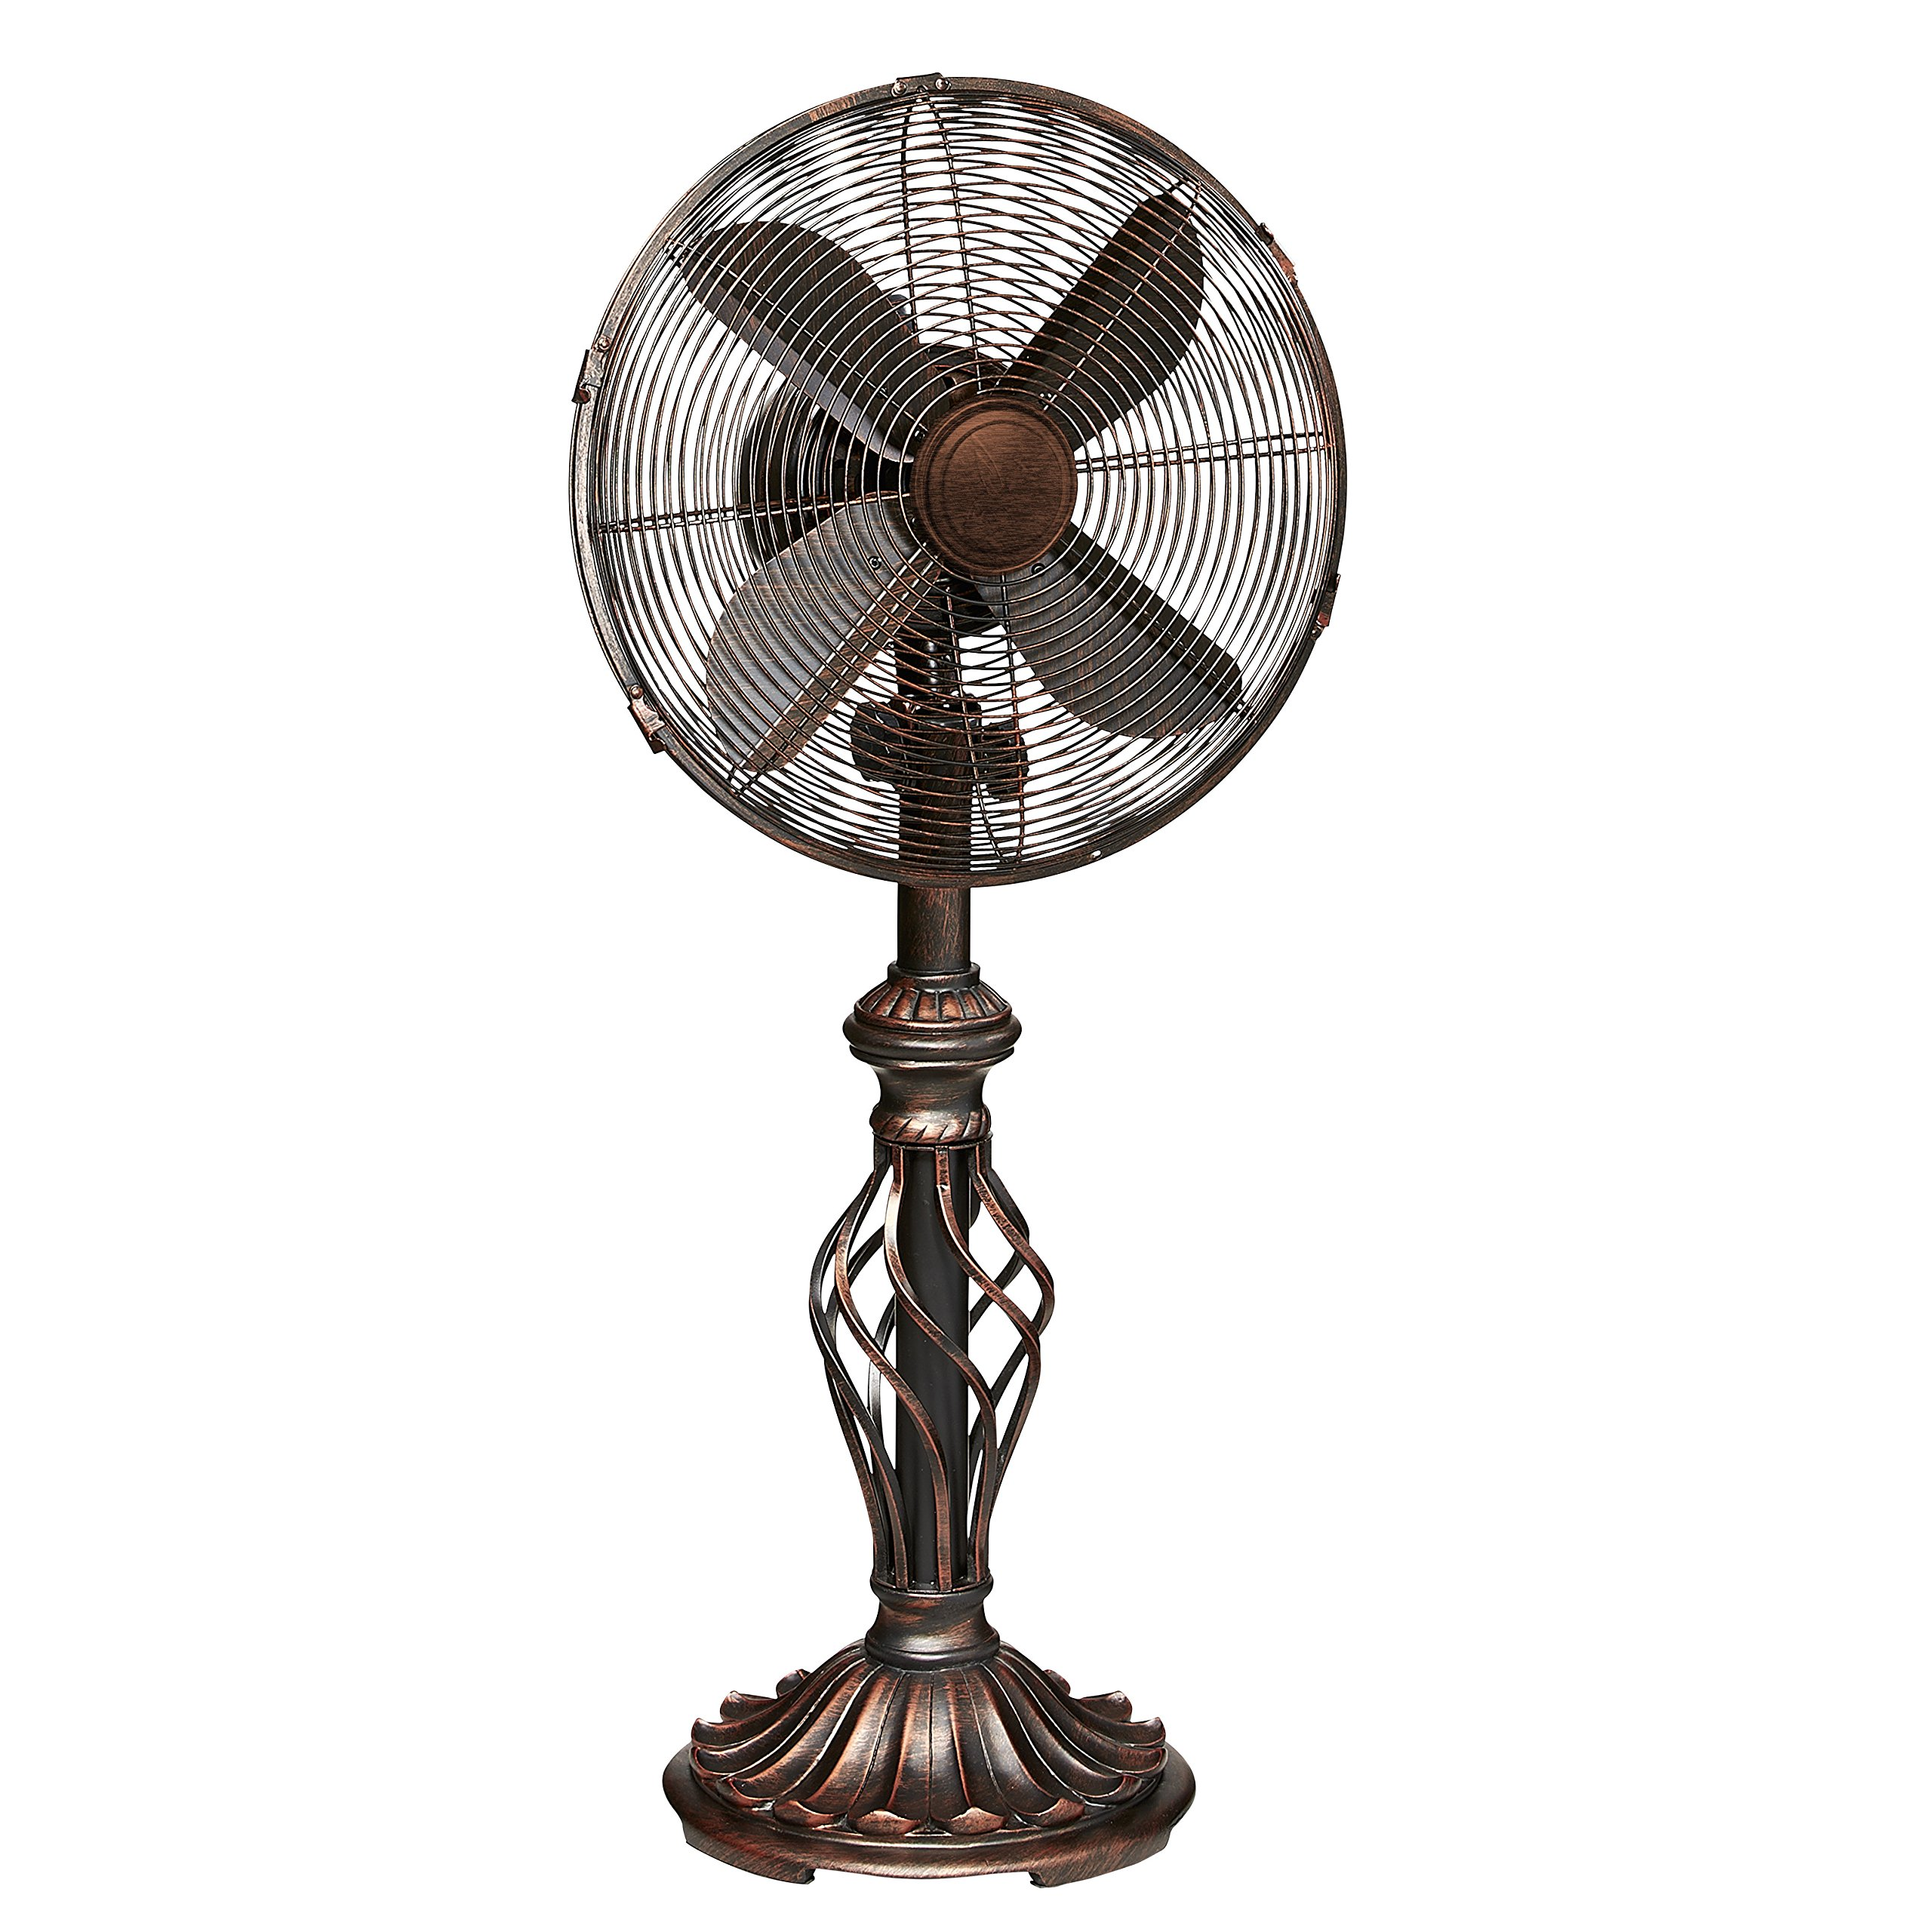 Prestige Rustica Oscillating Pedestal Fan with 3 Speed Made w/ Metal in Brown Finish 30'' H x 12'' W x 4.5'' D in.